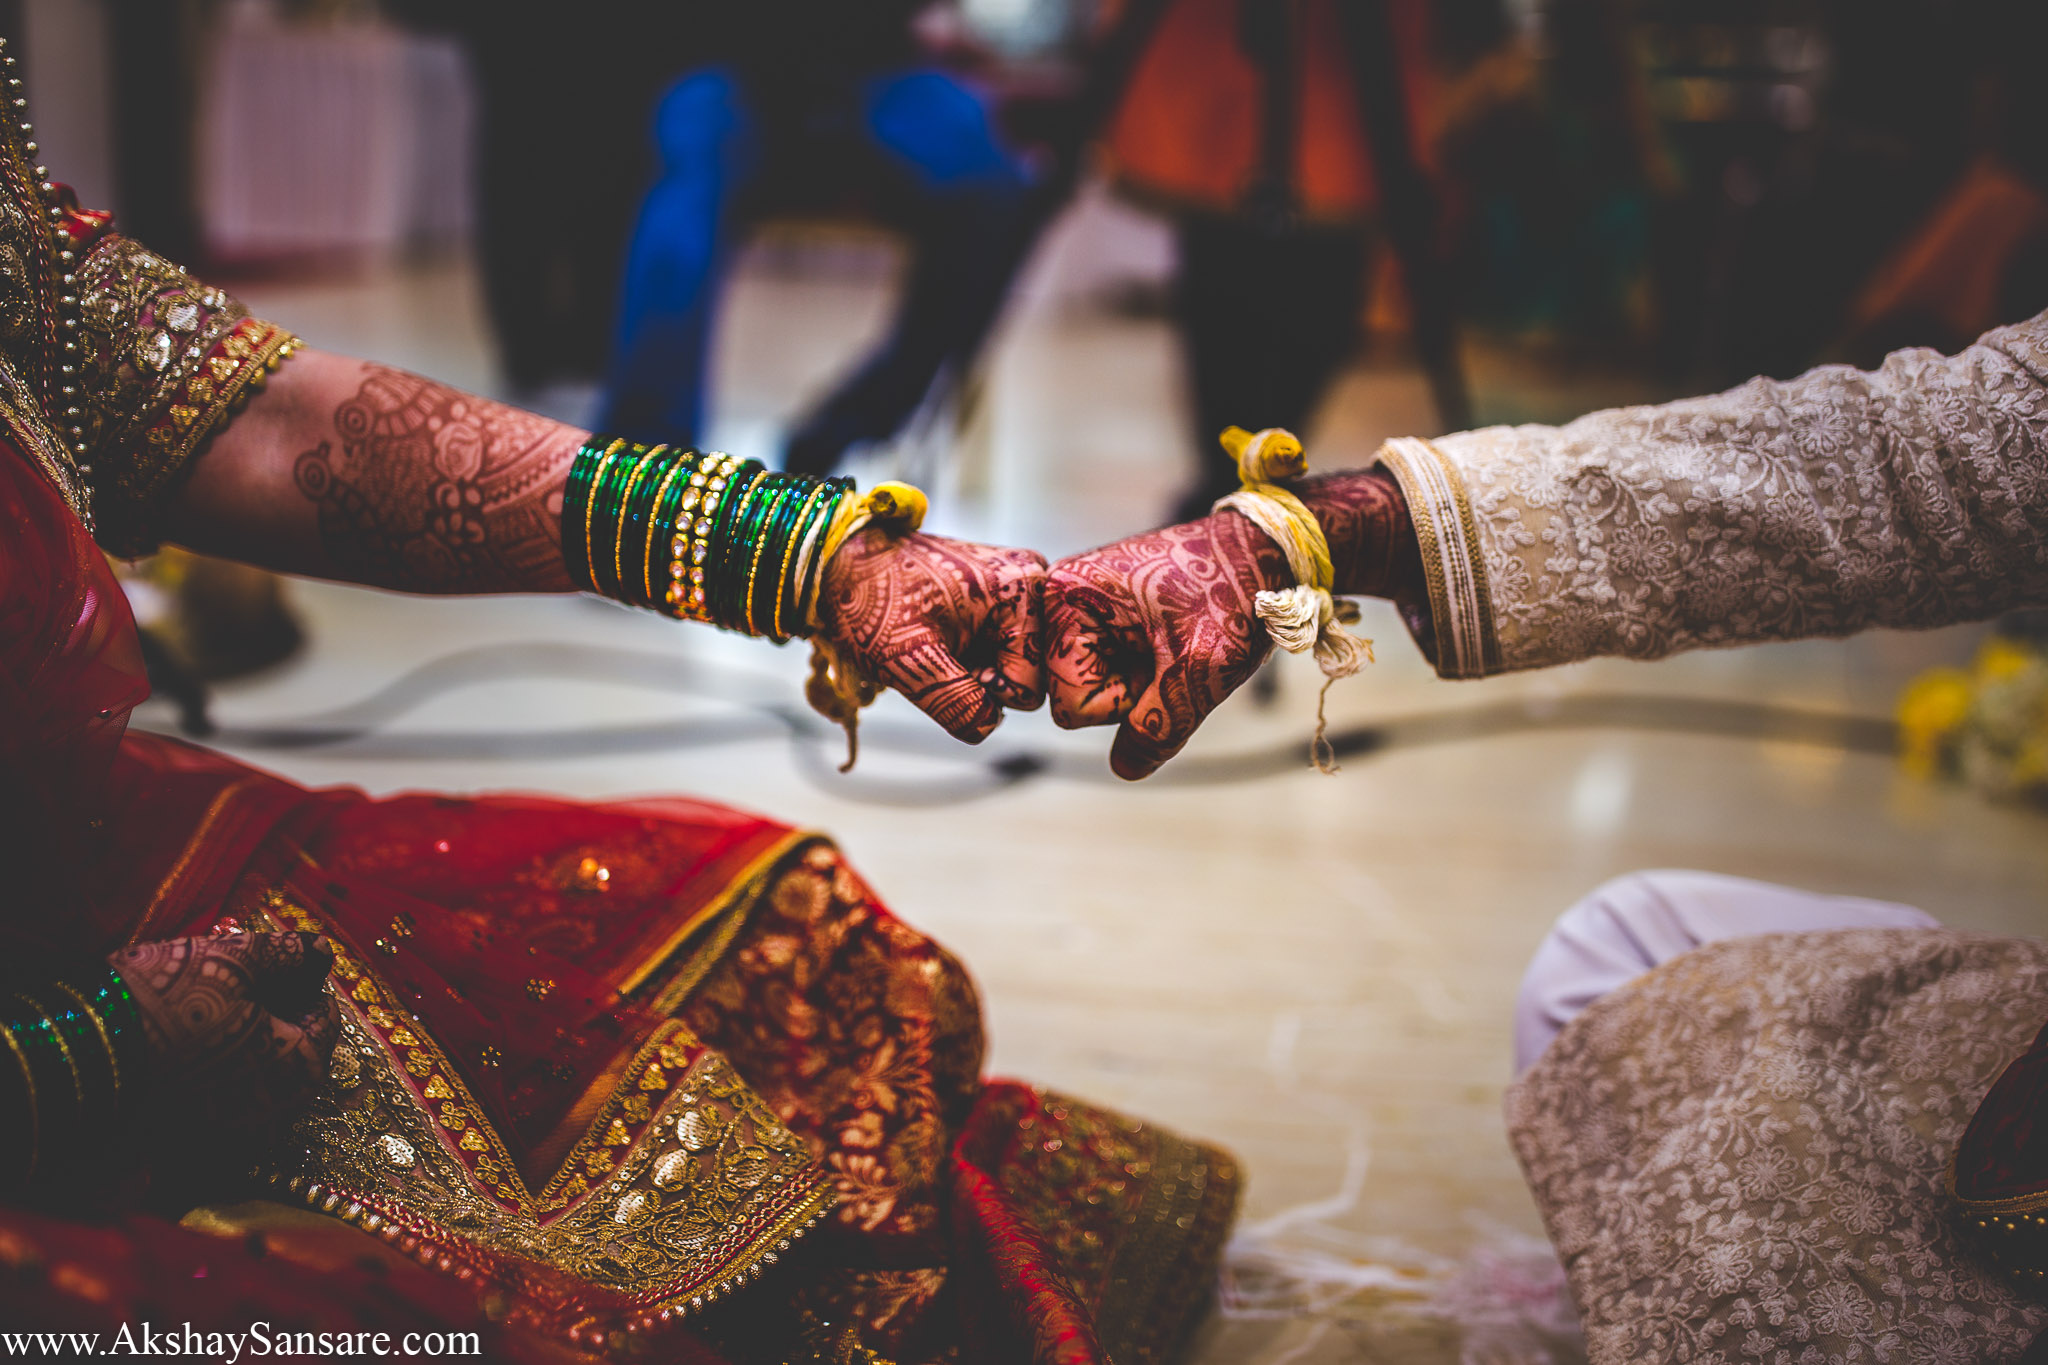 Ajay & Devika Akshay Sansare Photography Best Candid wedding photographer in mumbai india21.jpg